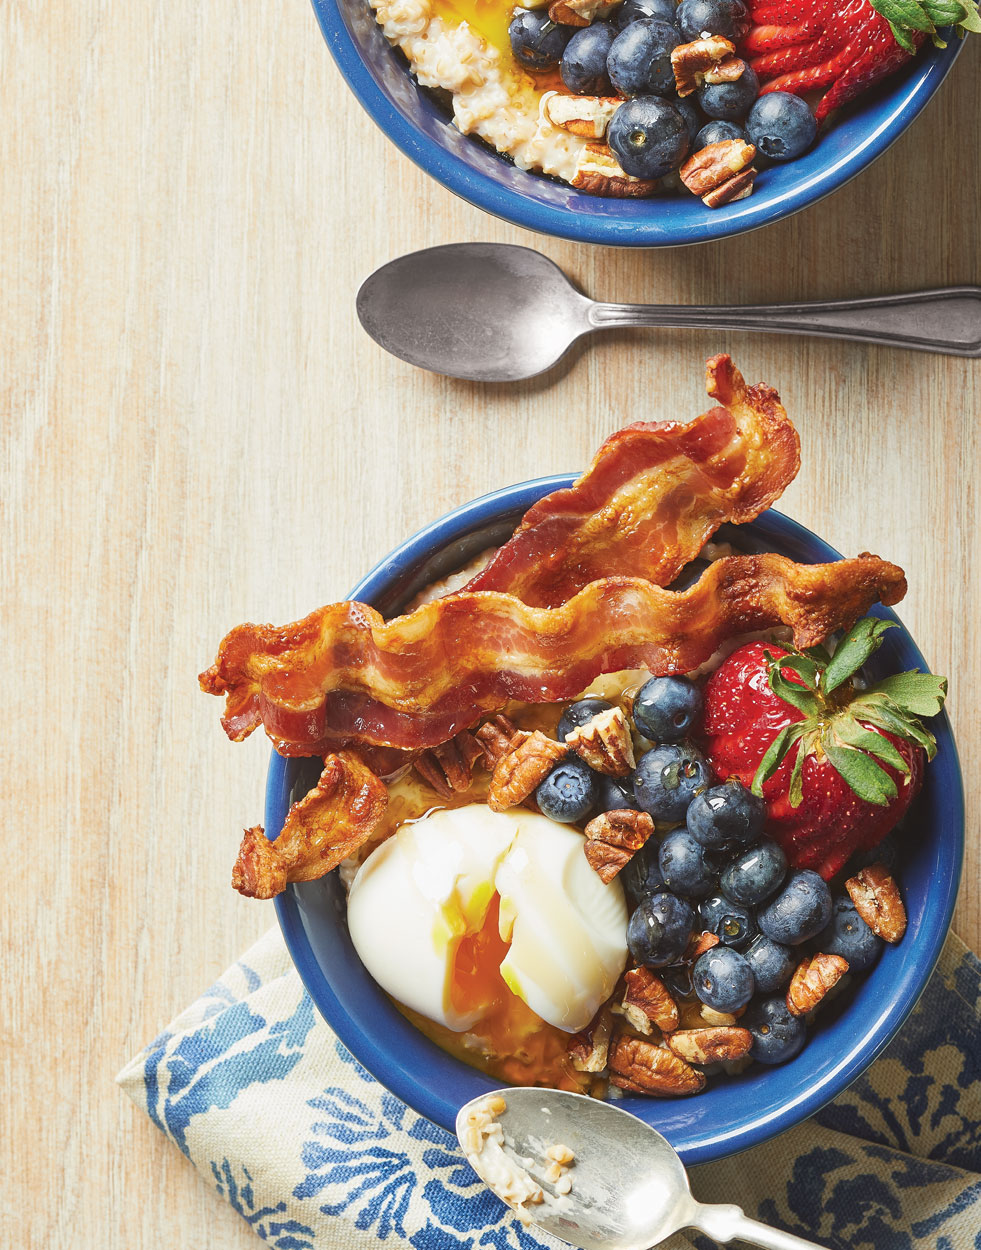 Steel-Cut Oats Breakfast Bowls with Bacon, Berries & Soft-Cooked Eggs